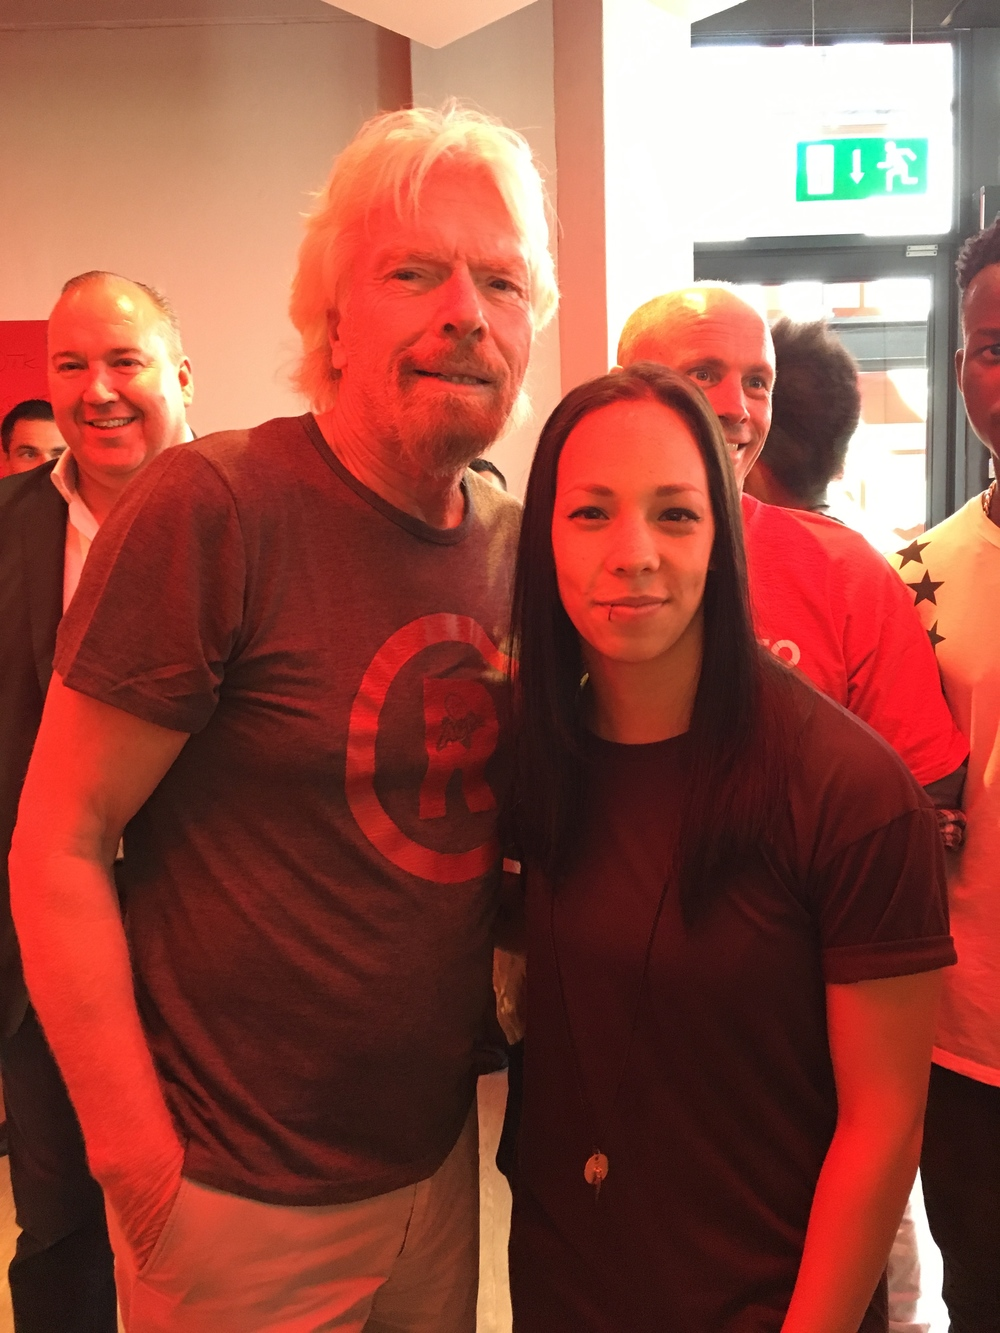 RICHARD BRANSON & COURTNAE' PAUL